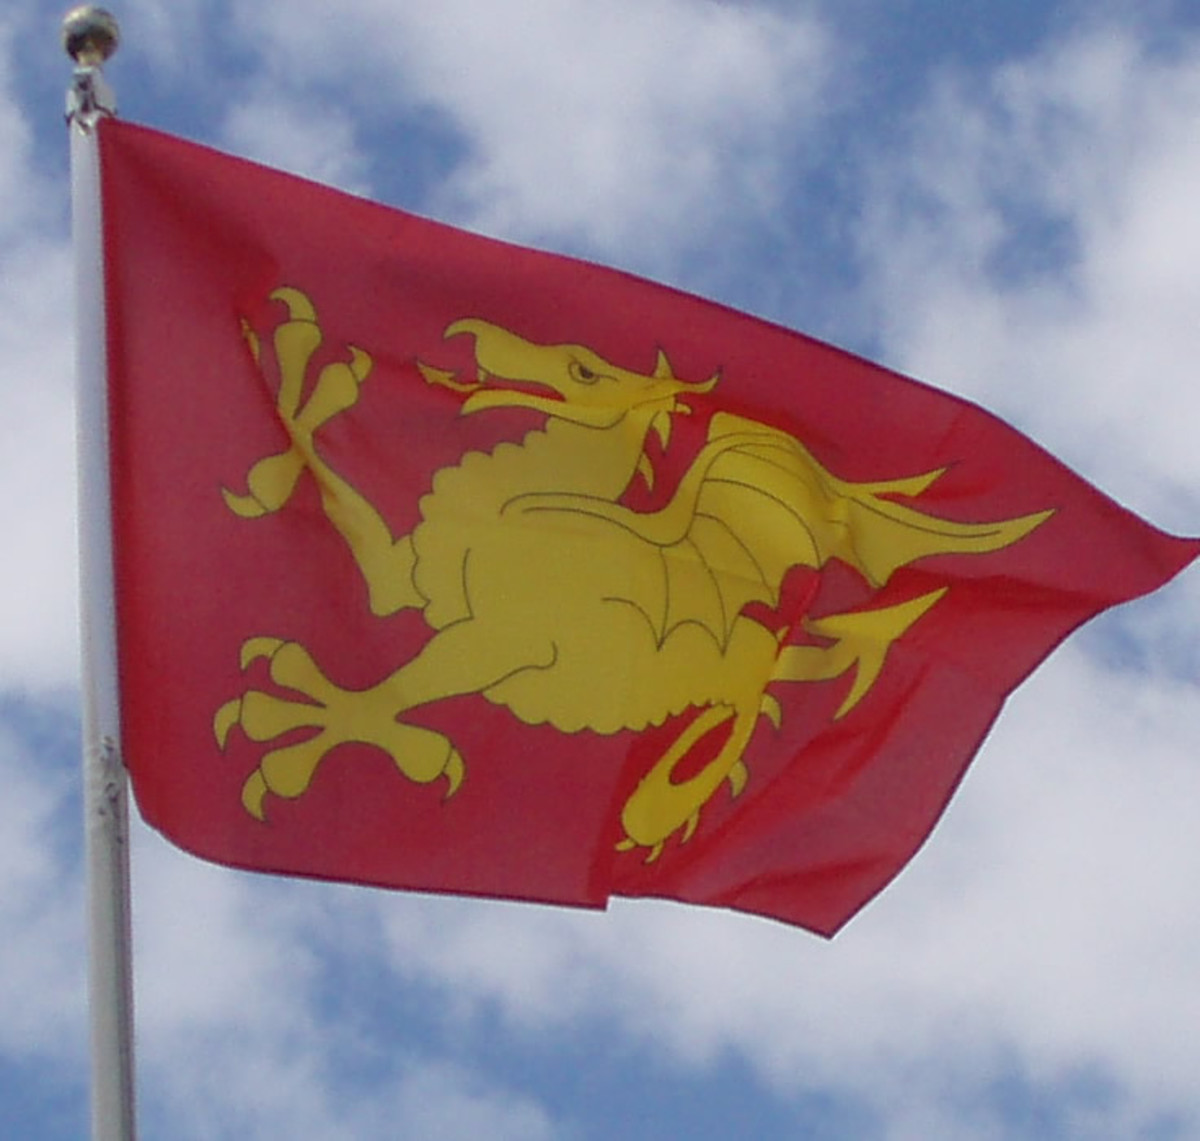 The Wyvern banner of Wessex, symbol of Harold's standing from Godwin's death in 1053